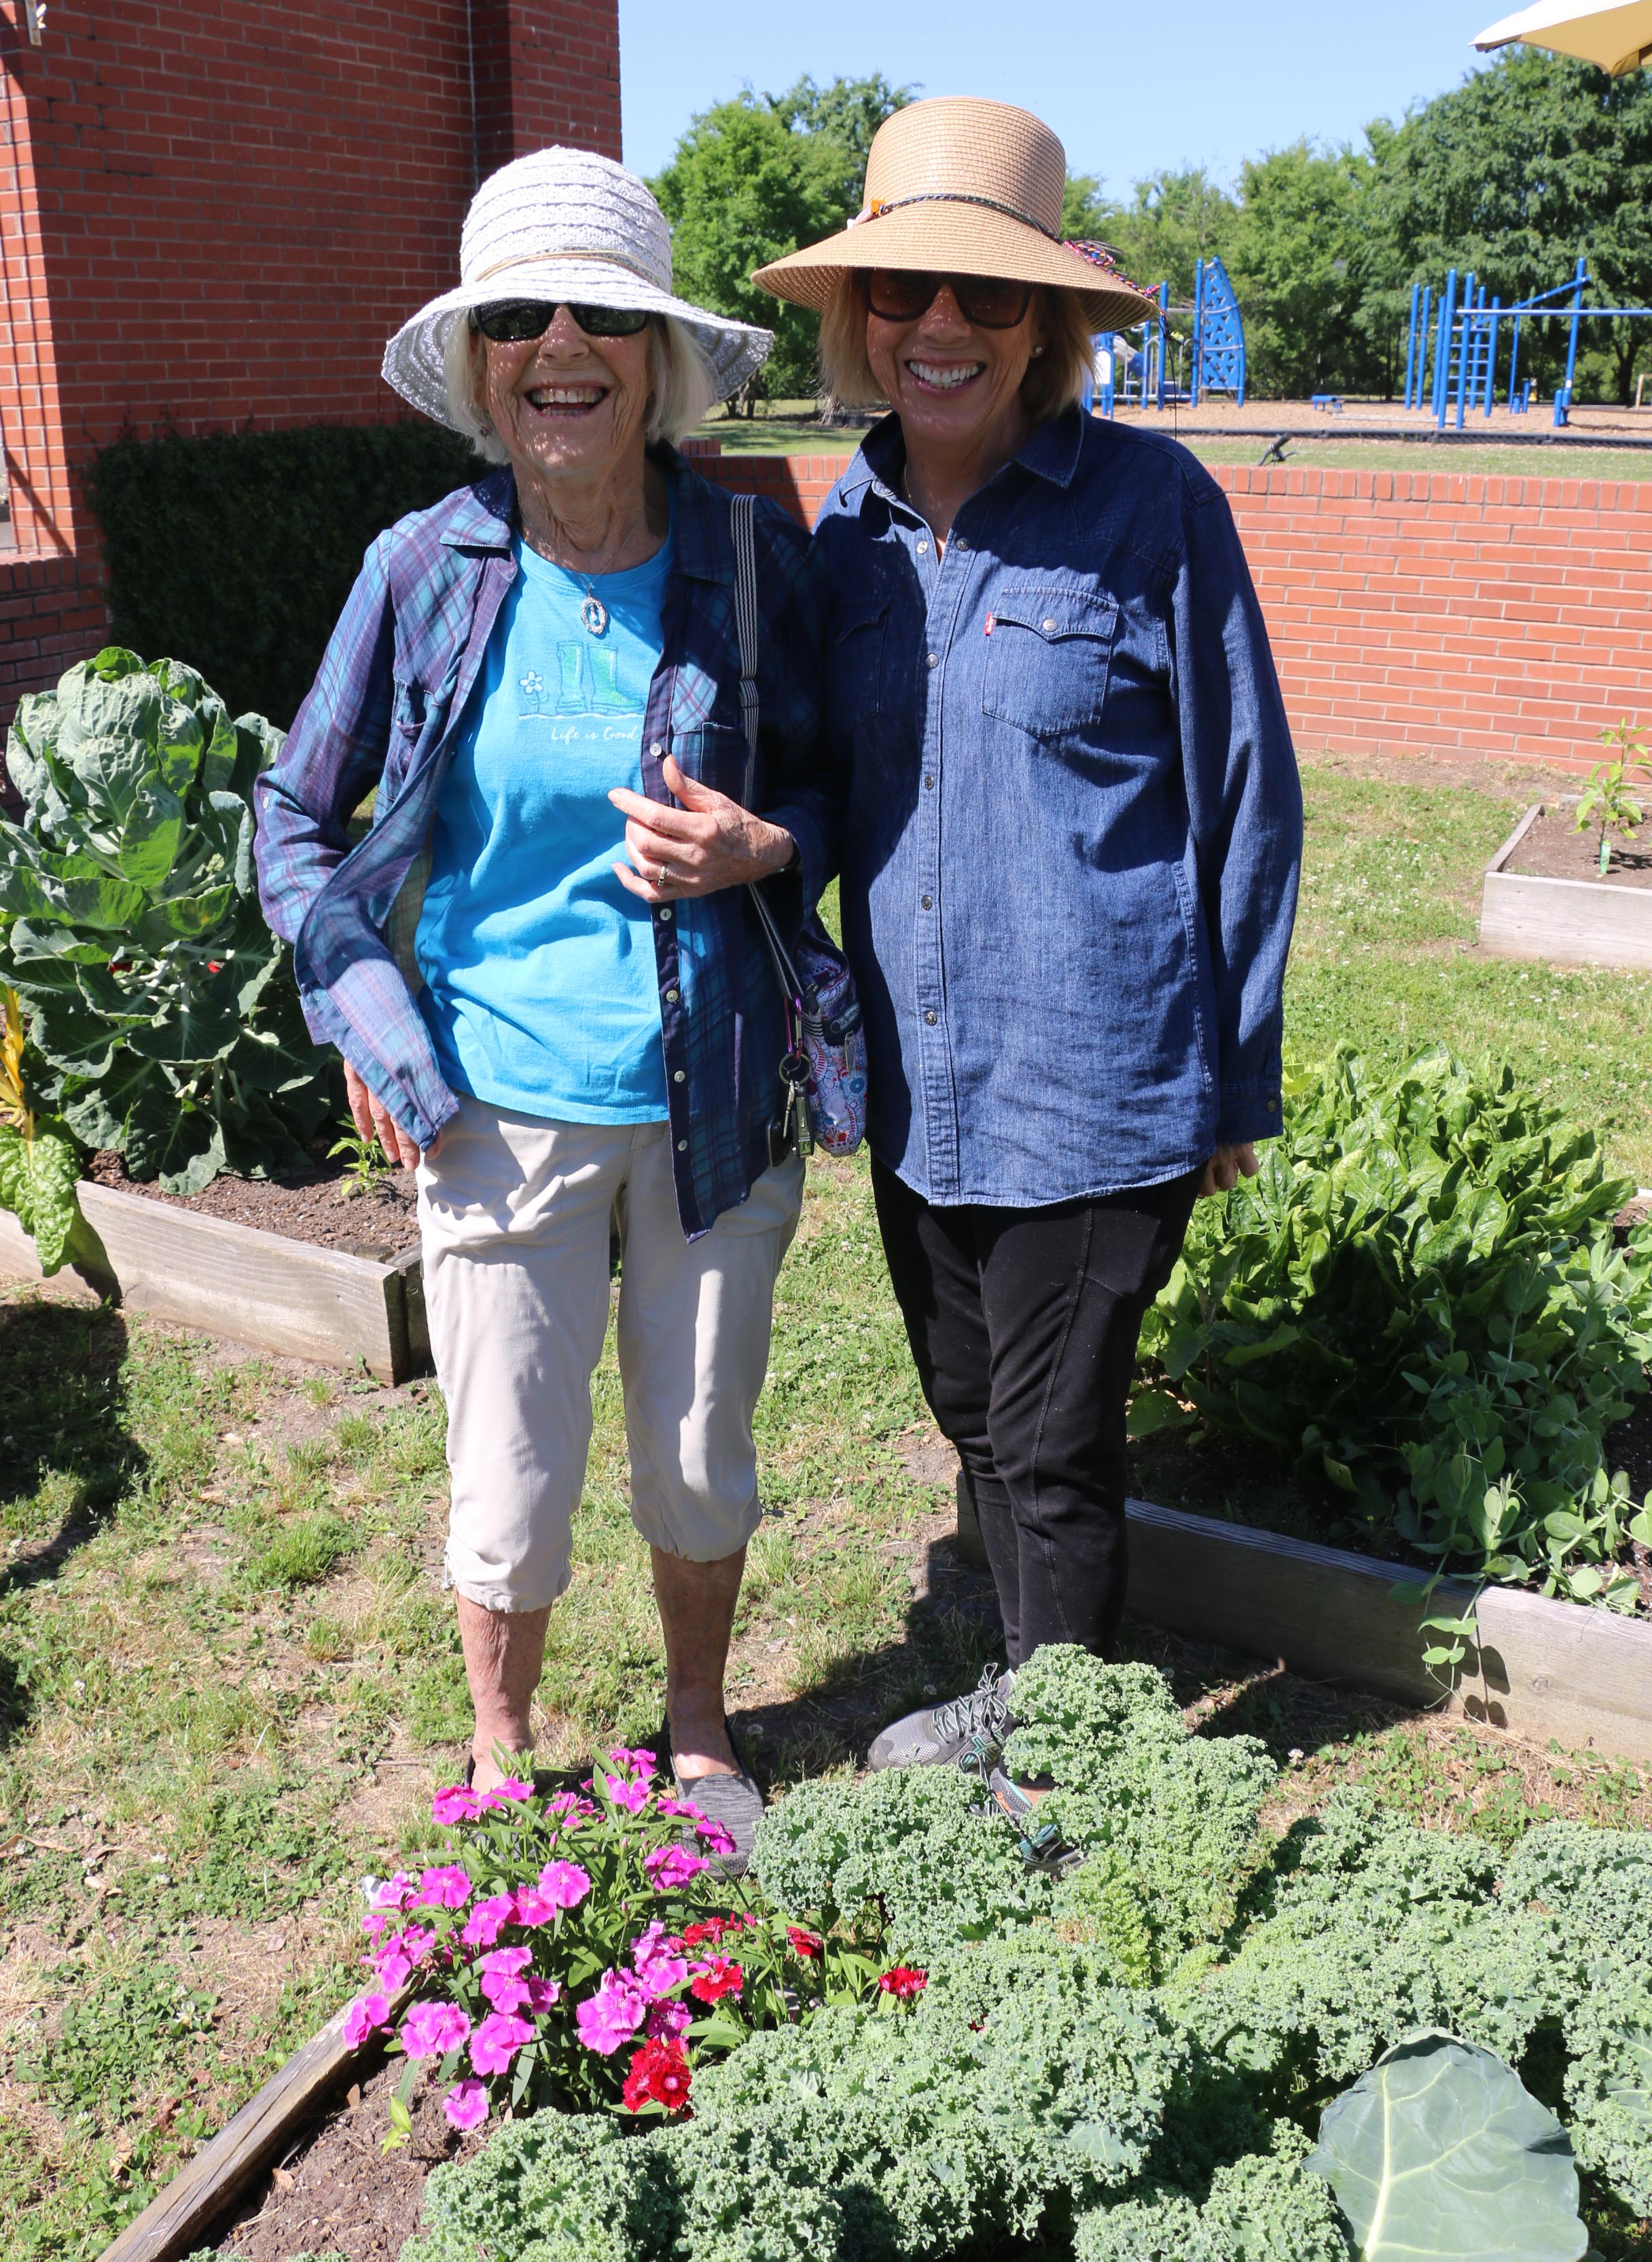 Marion Franks, who tends a plot in the garden, is joined by volunteer Mary Wickmire.